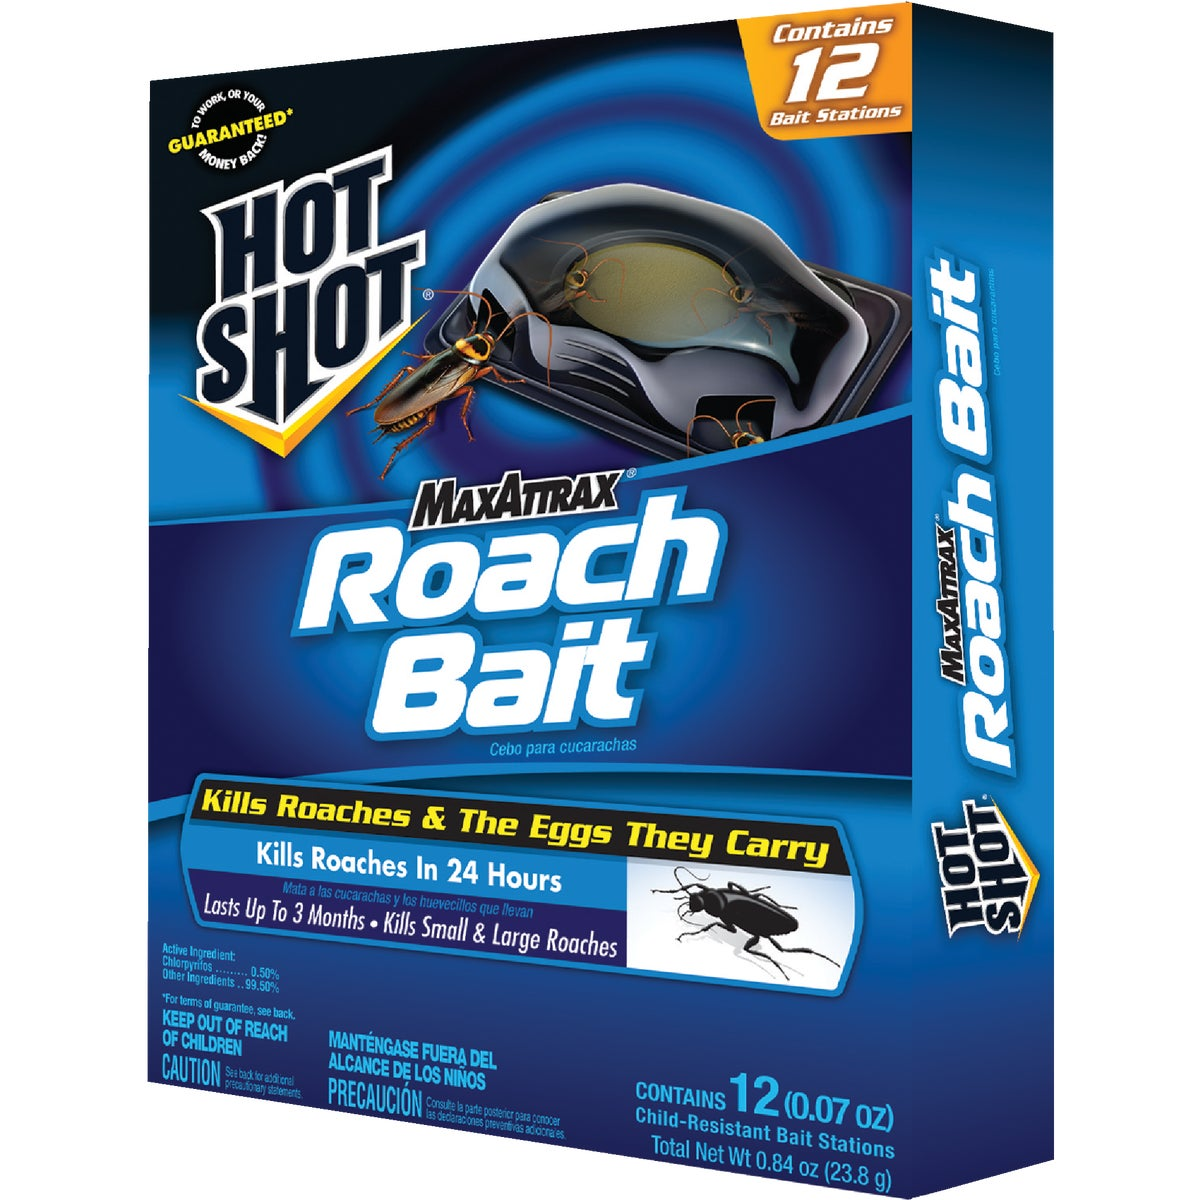 6PK ROACH BAIT TRAP - HG2030W by United Industries Co